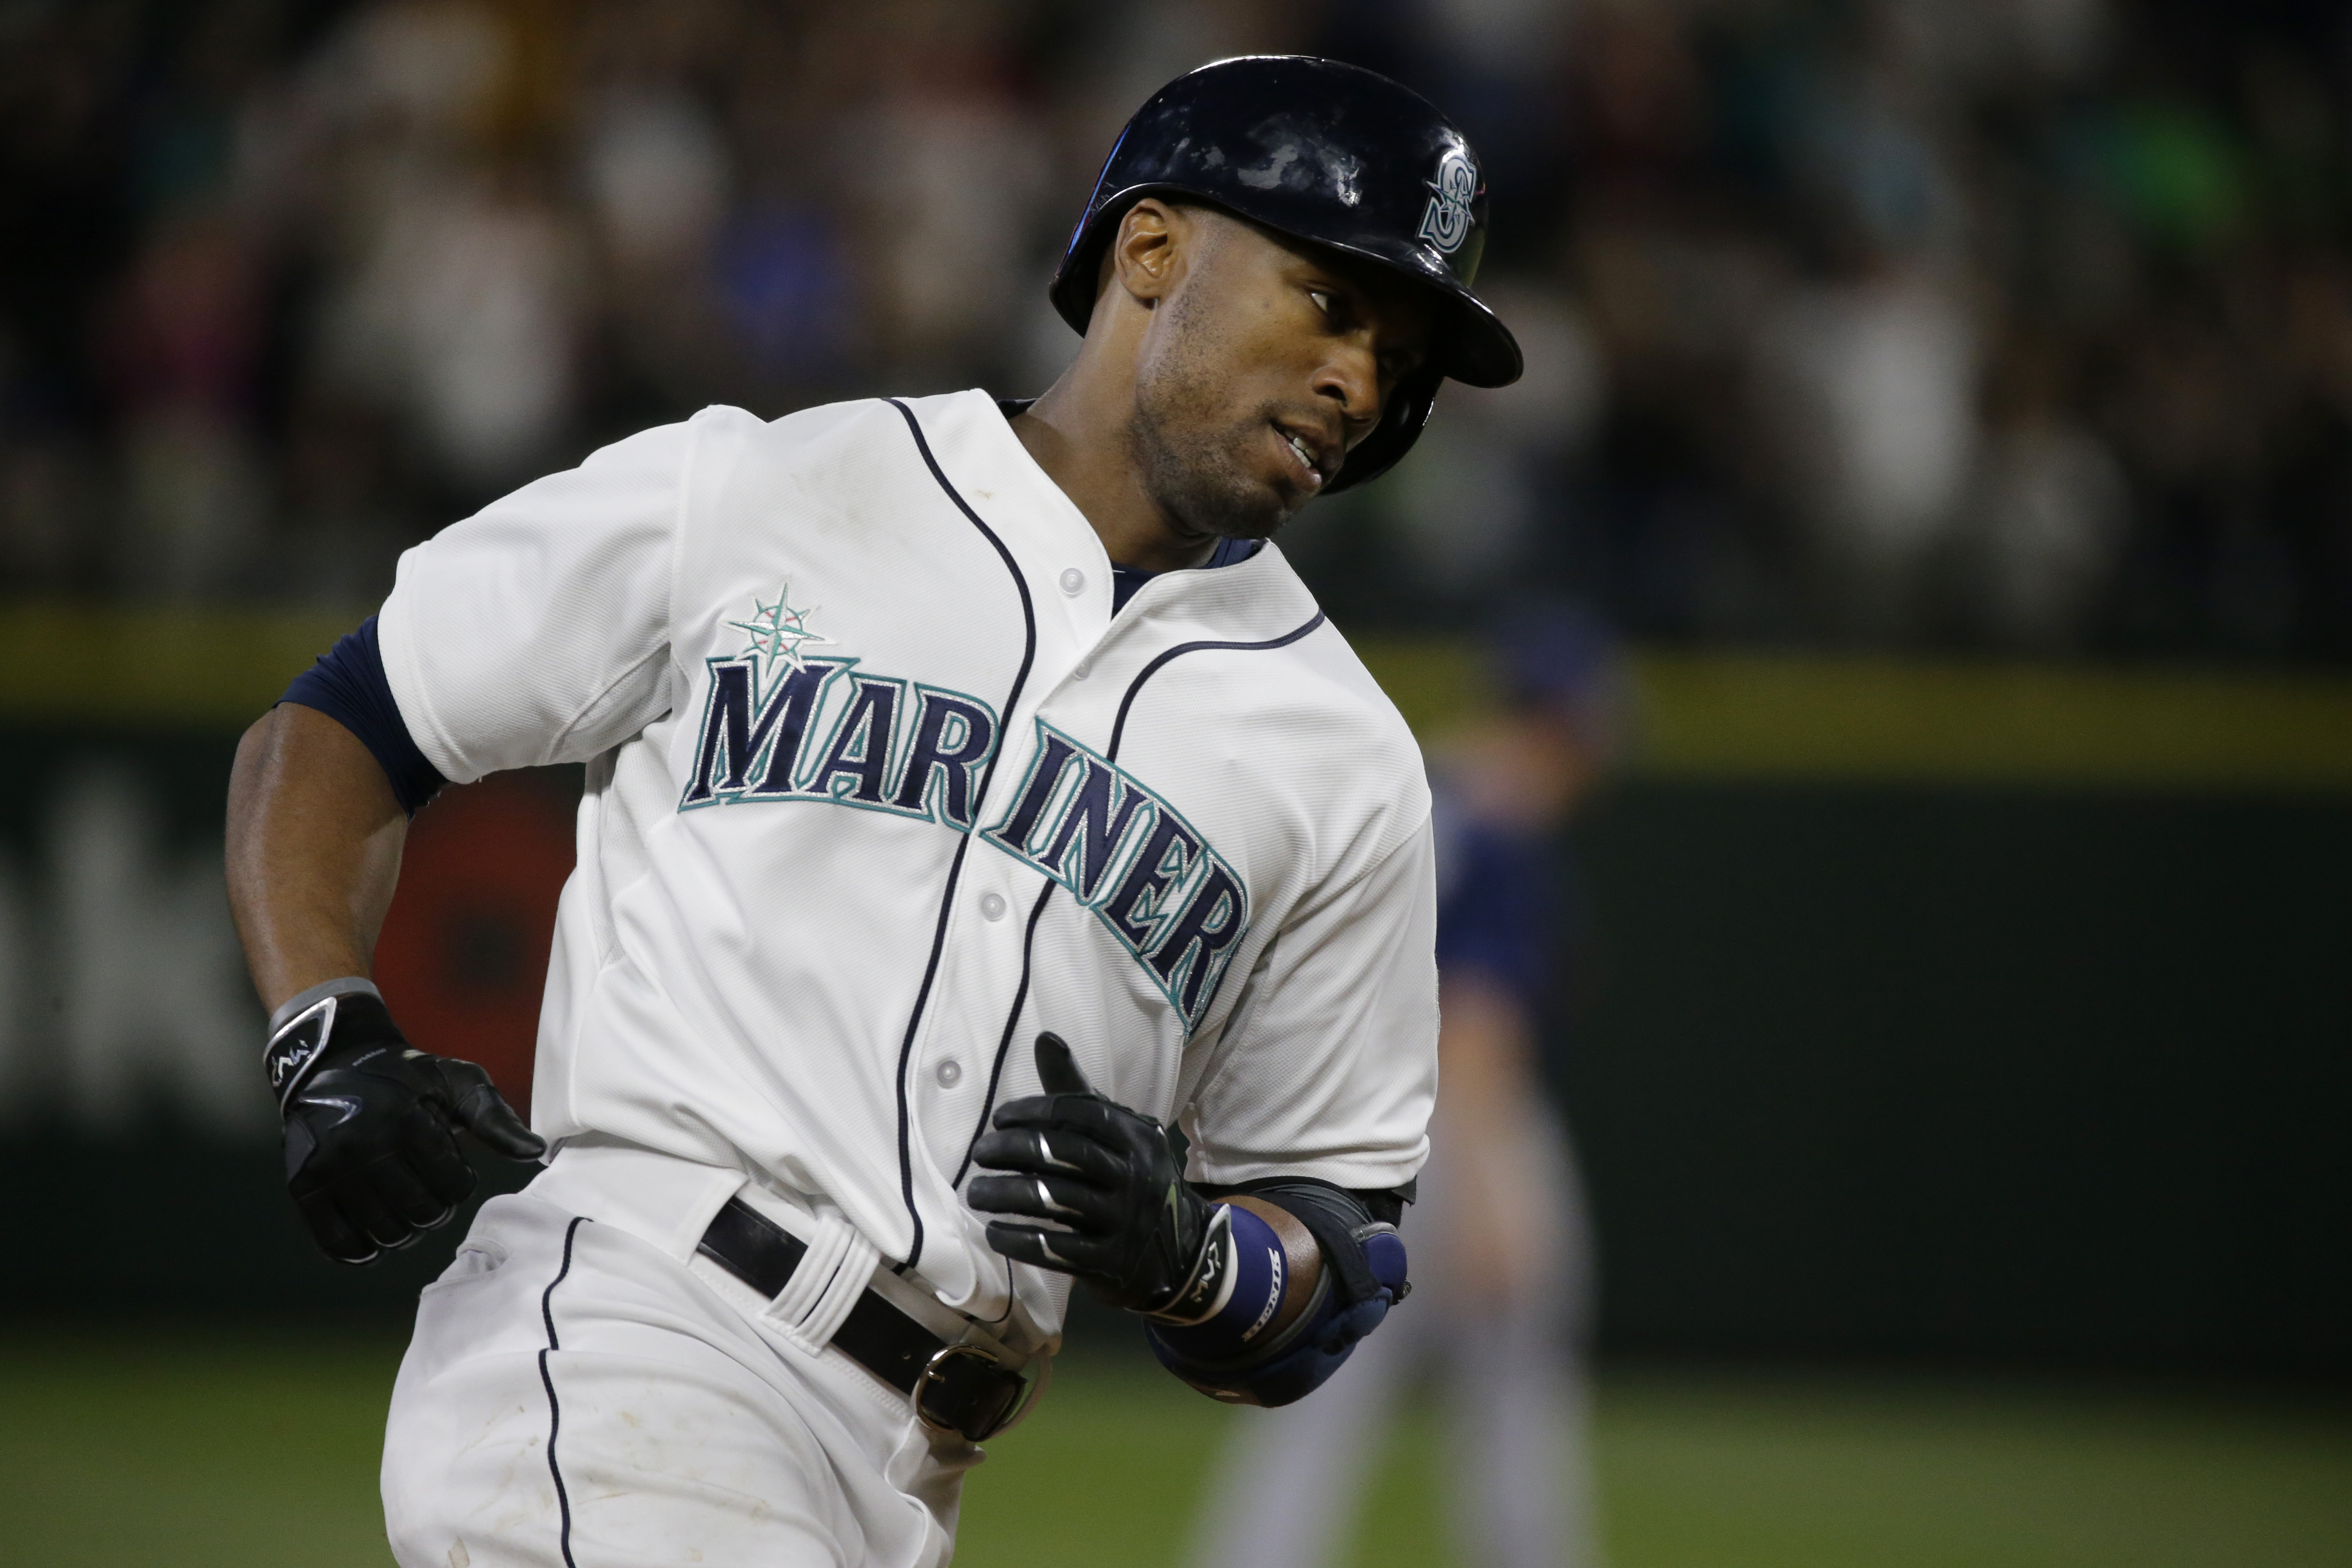 Seattle Mariners' Austin Jackson rounds the bases after he hit a solo home run in the seventh inning of a baseball game, Saturday, June 6, 2015, in Seattle. (AP Photo/Ted S. Warren)